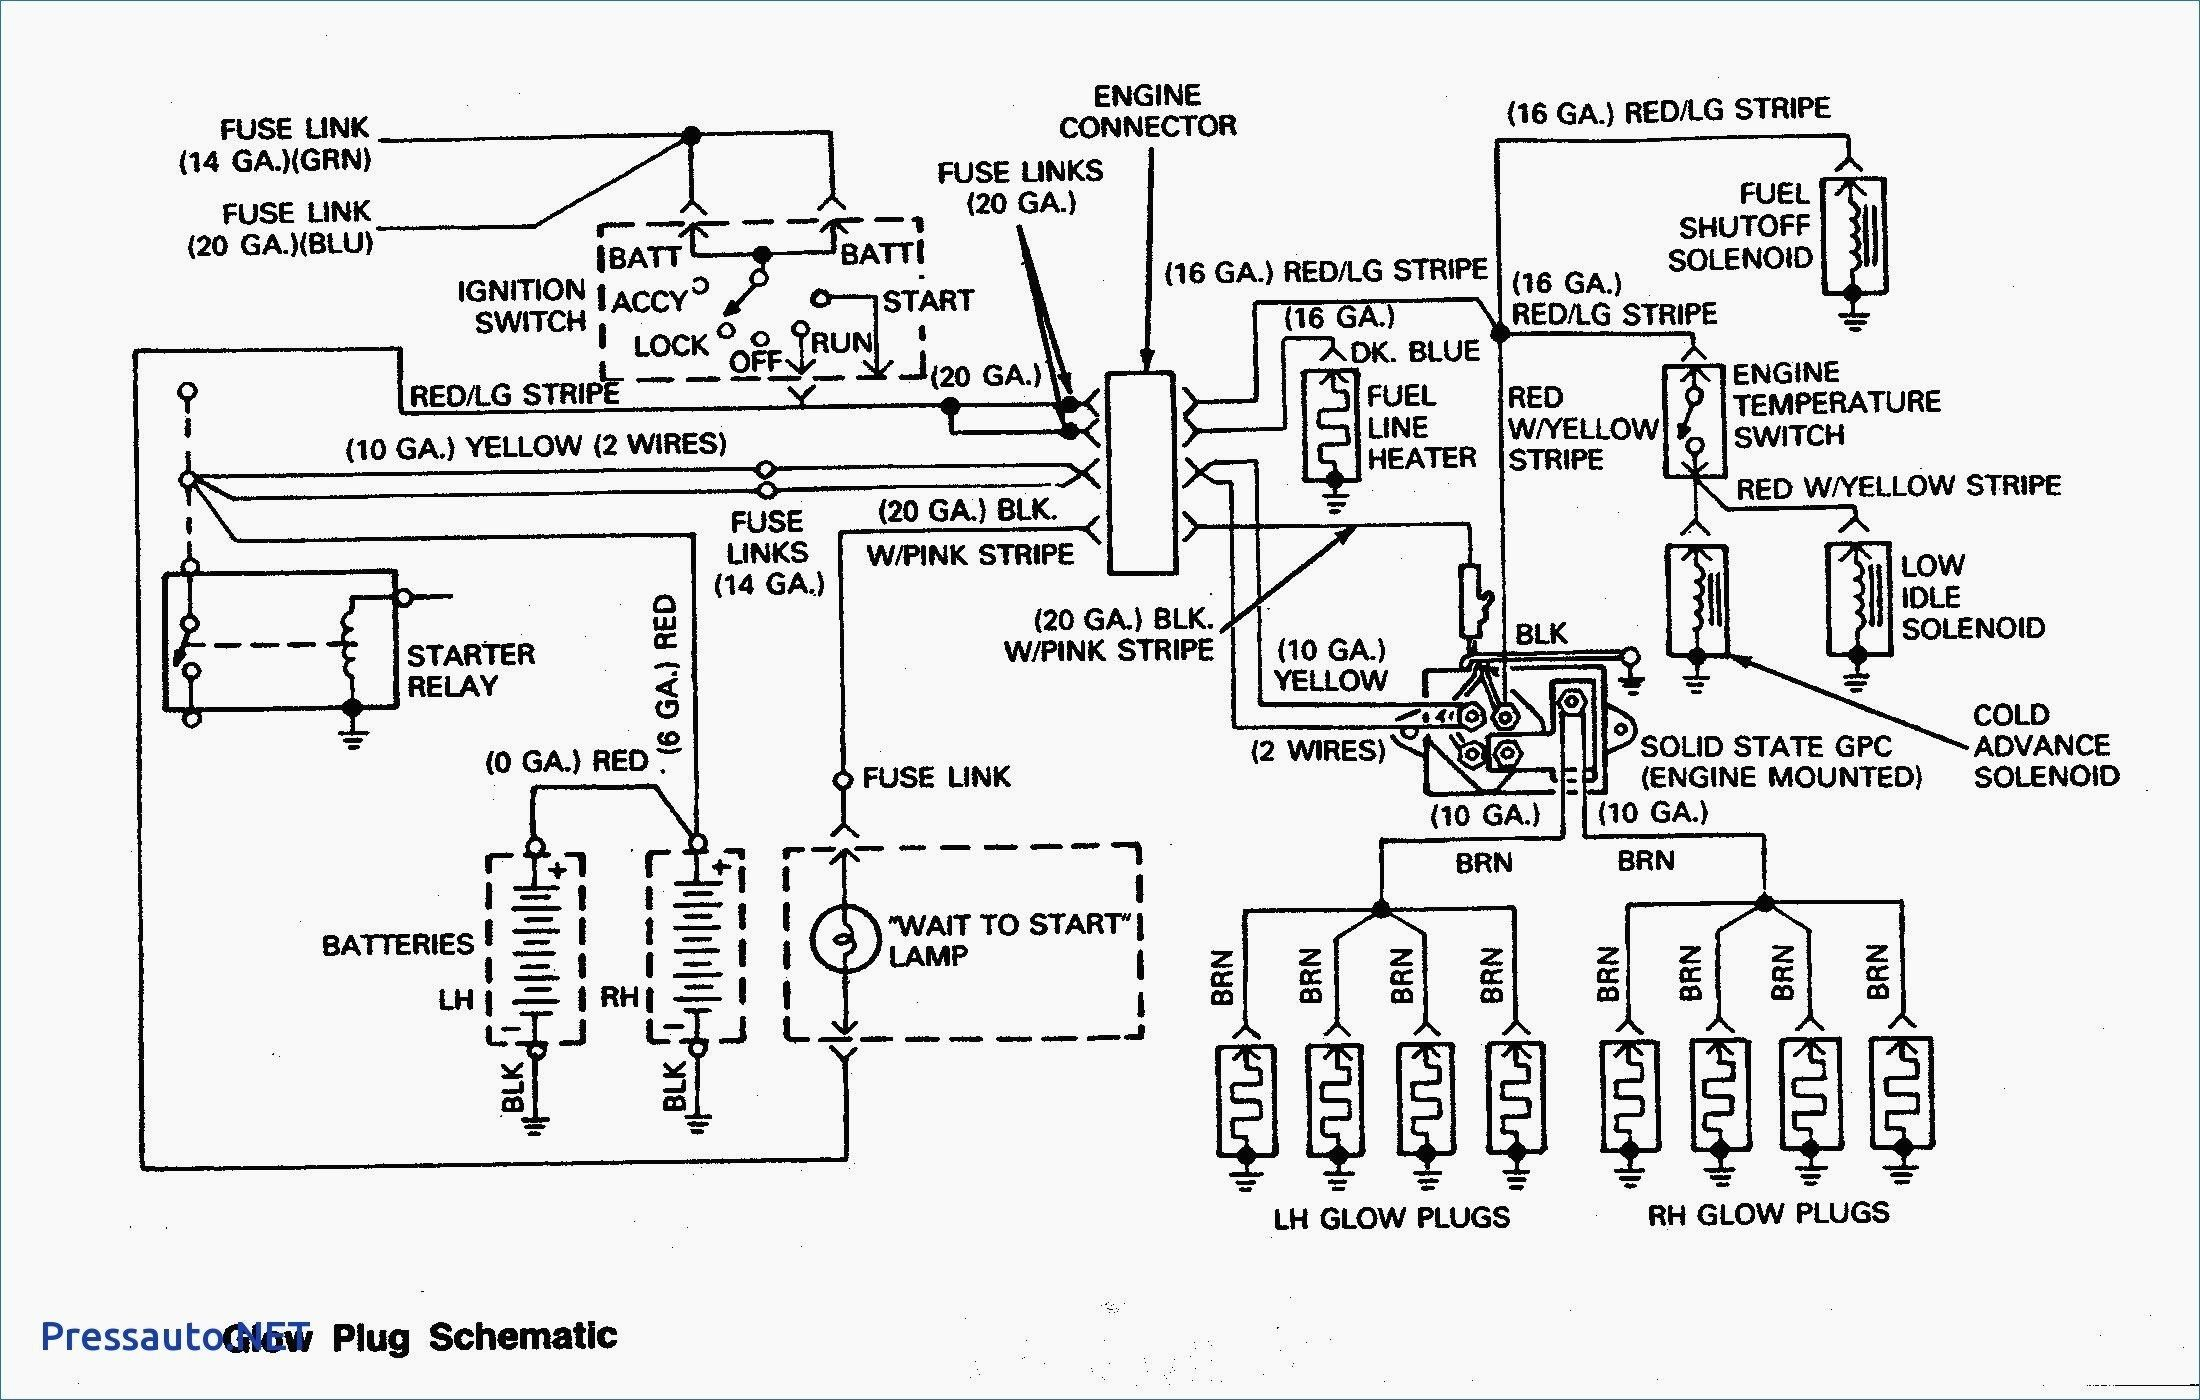 7 3 Idi Glow Plug Relay Wiring Diagram Archives Kobecityinfo Regarding 7 3 Idi Glow Plug Controller Wiring Diagram Trailer Wiring Diagram Engine Tune Diagram